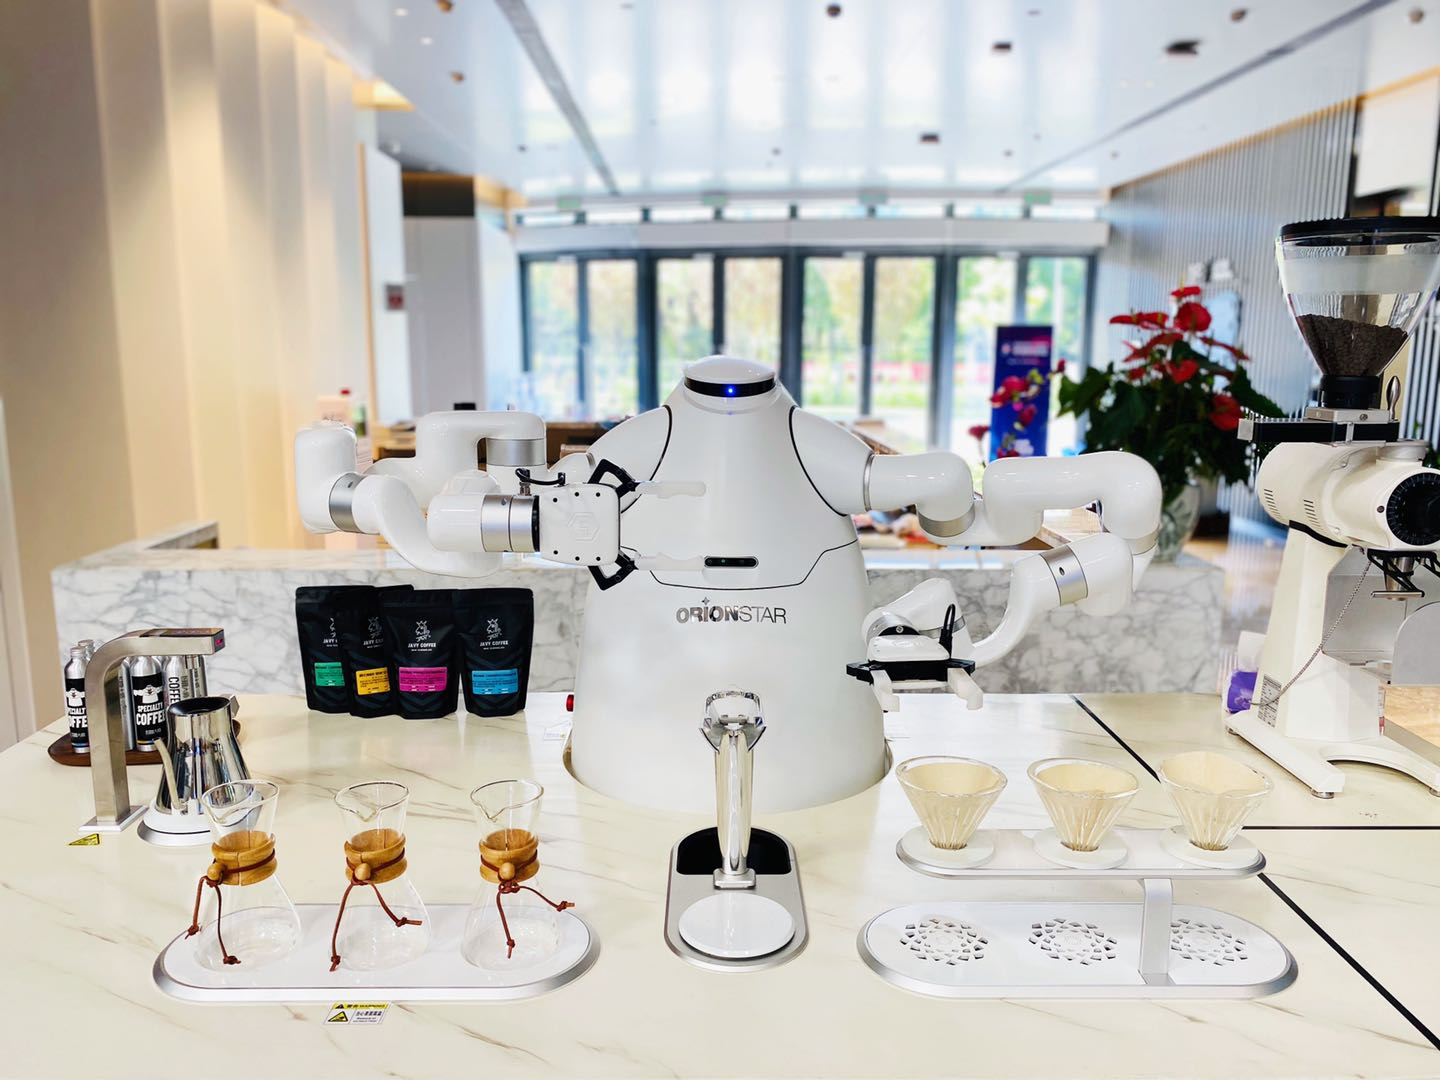 Should a Robot Make Your Coffee?